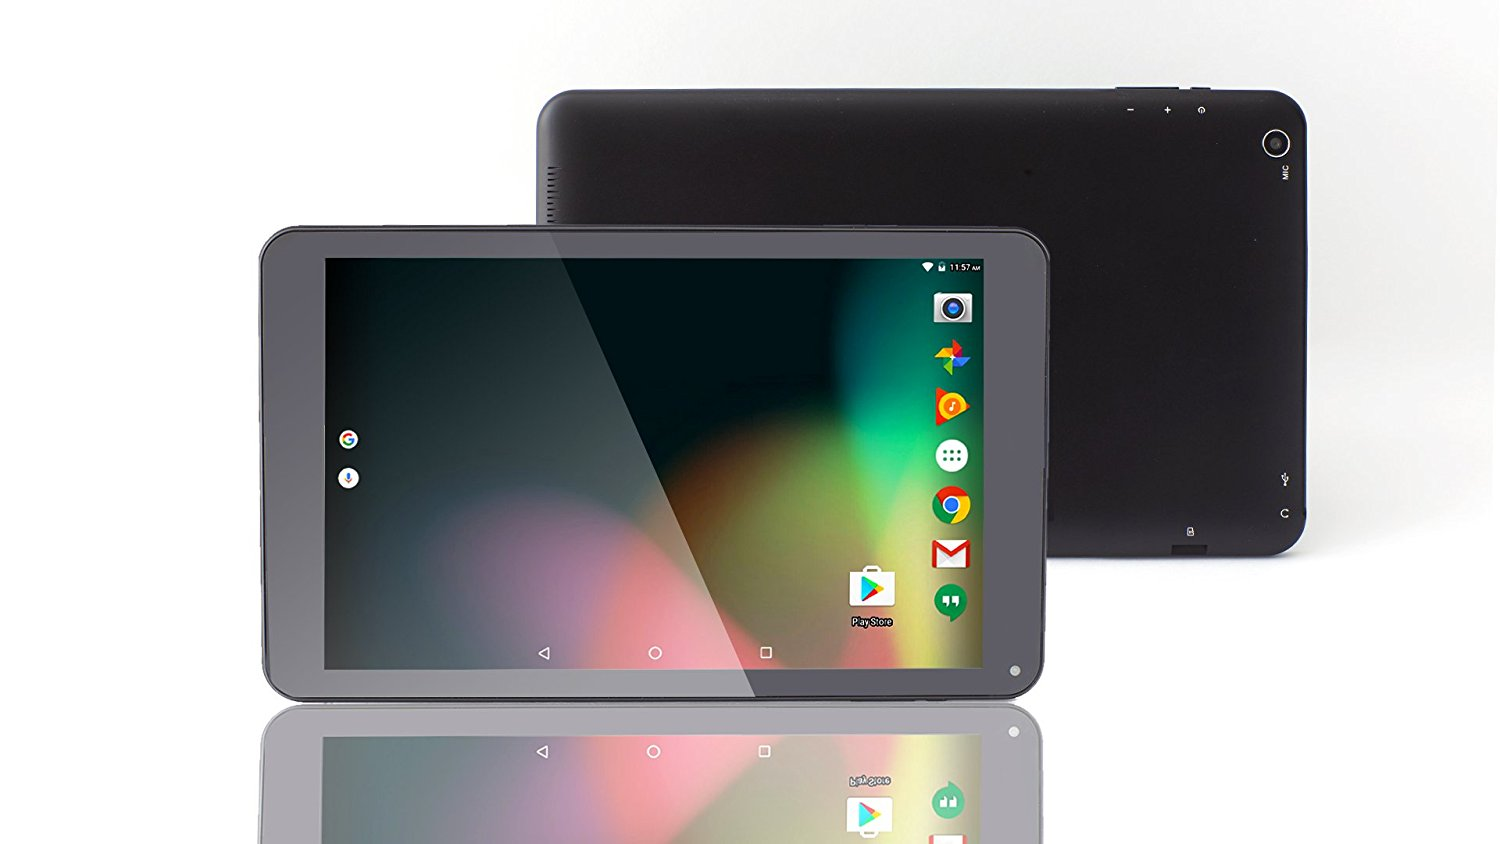 Tablet For Your Daily Use At An Inexpensive Price